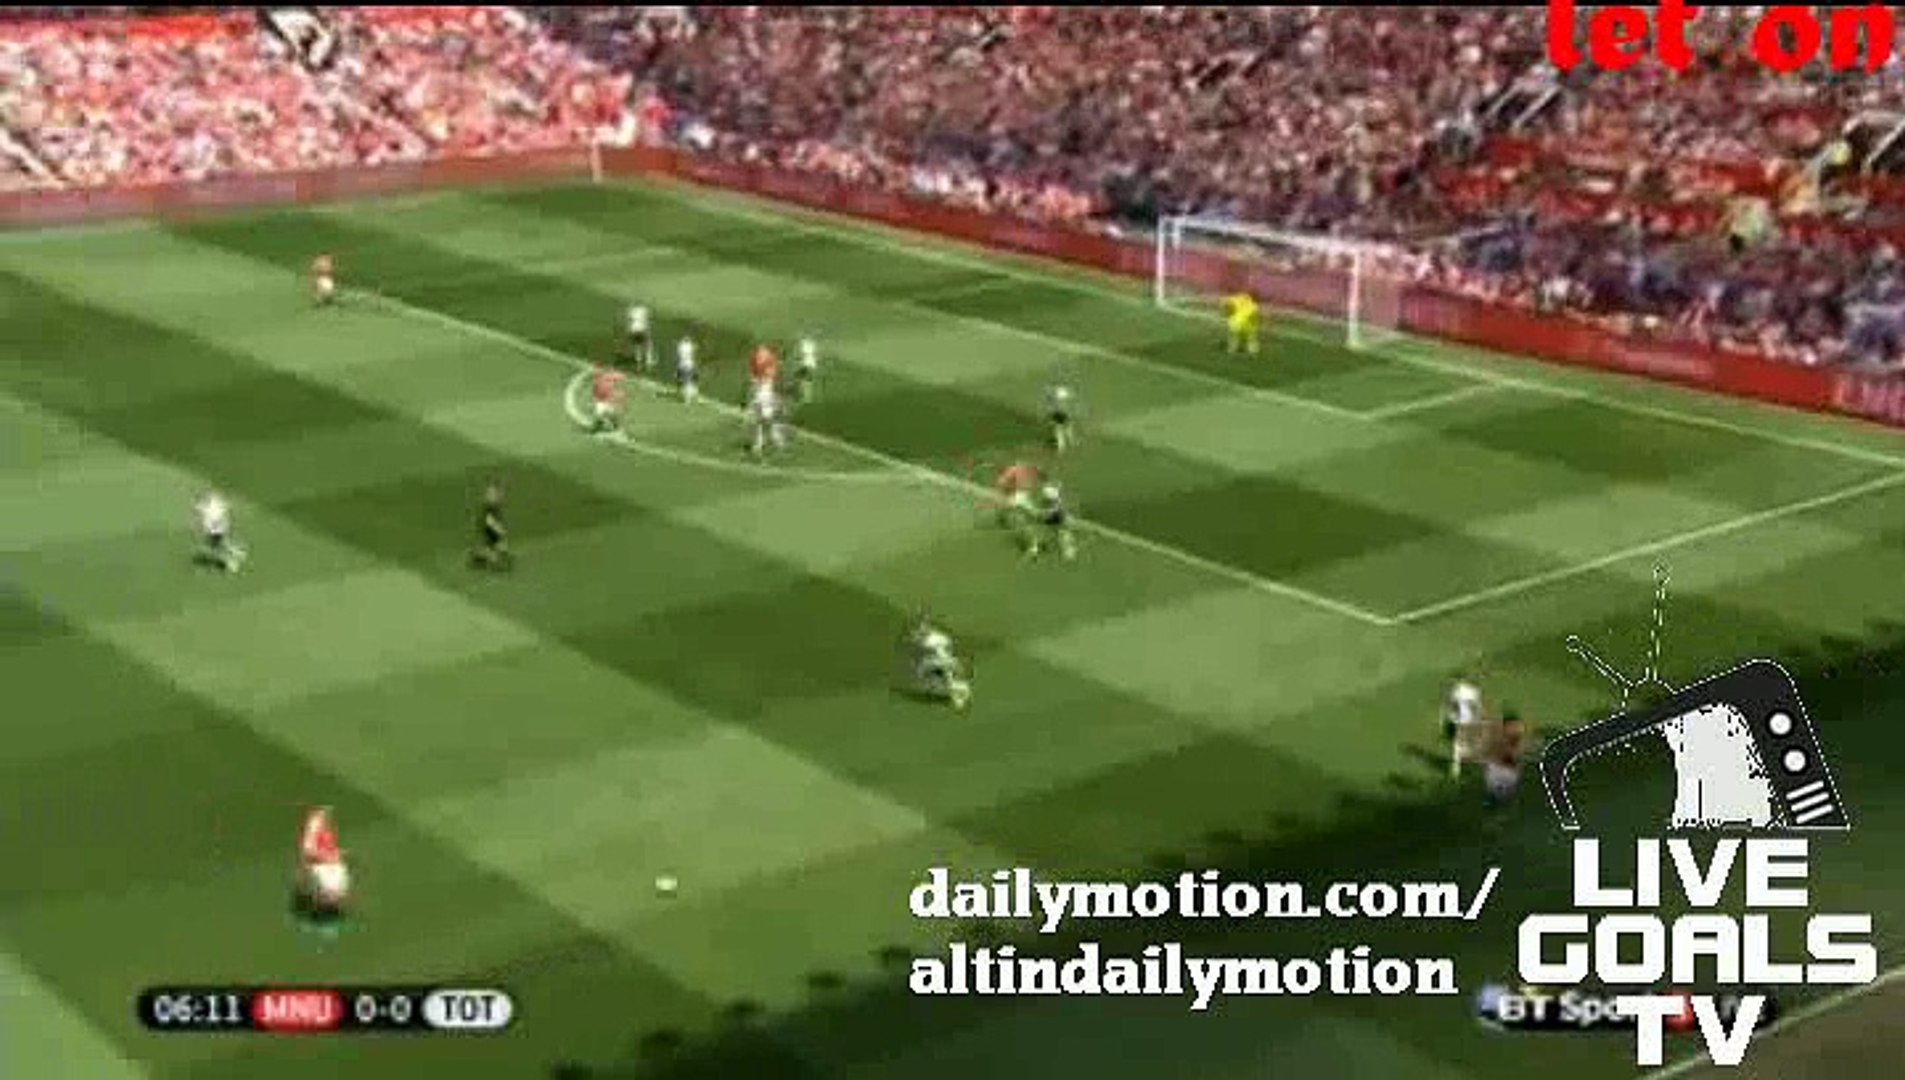 Manchester United Amazing Tika Taka Play - Manchester United 0-0 Tottengham - Premier League - 08.08